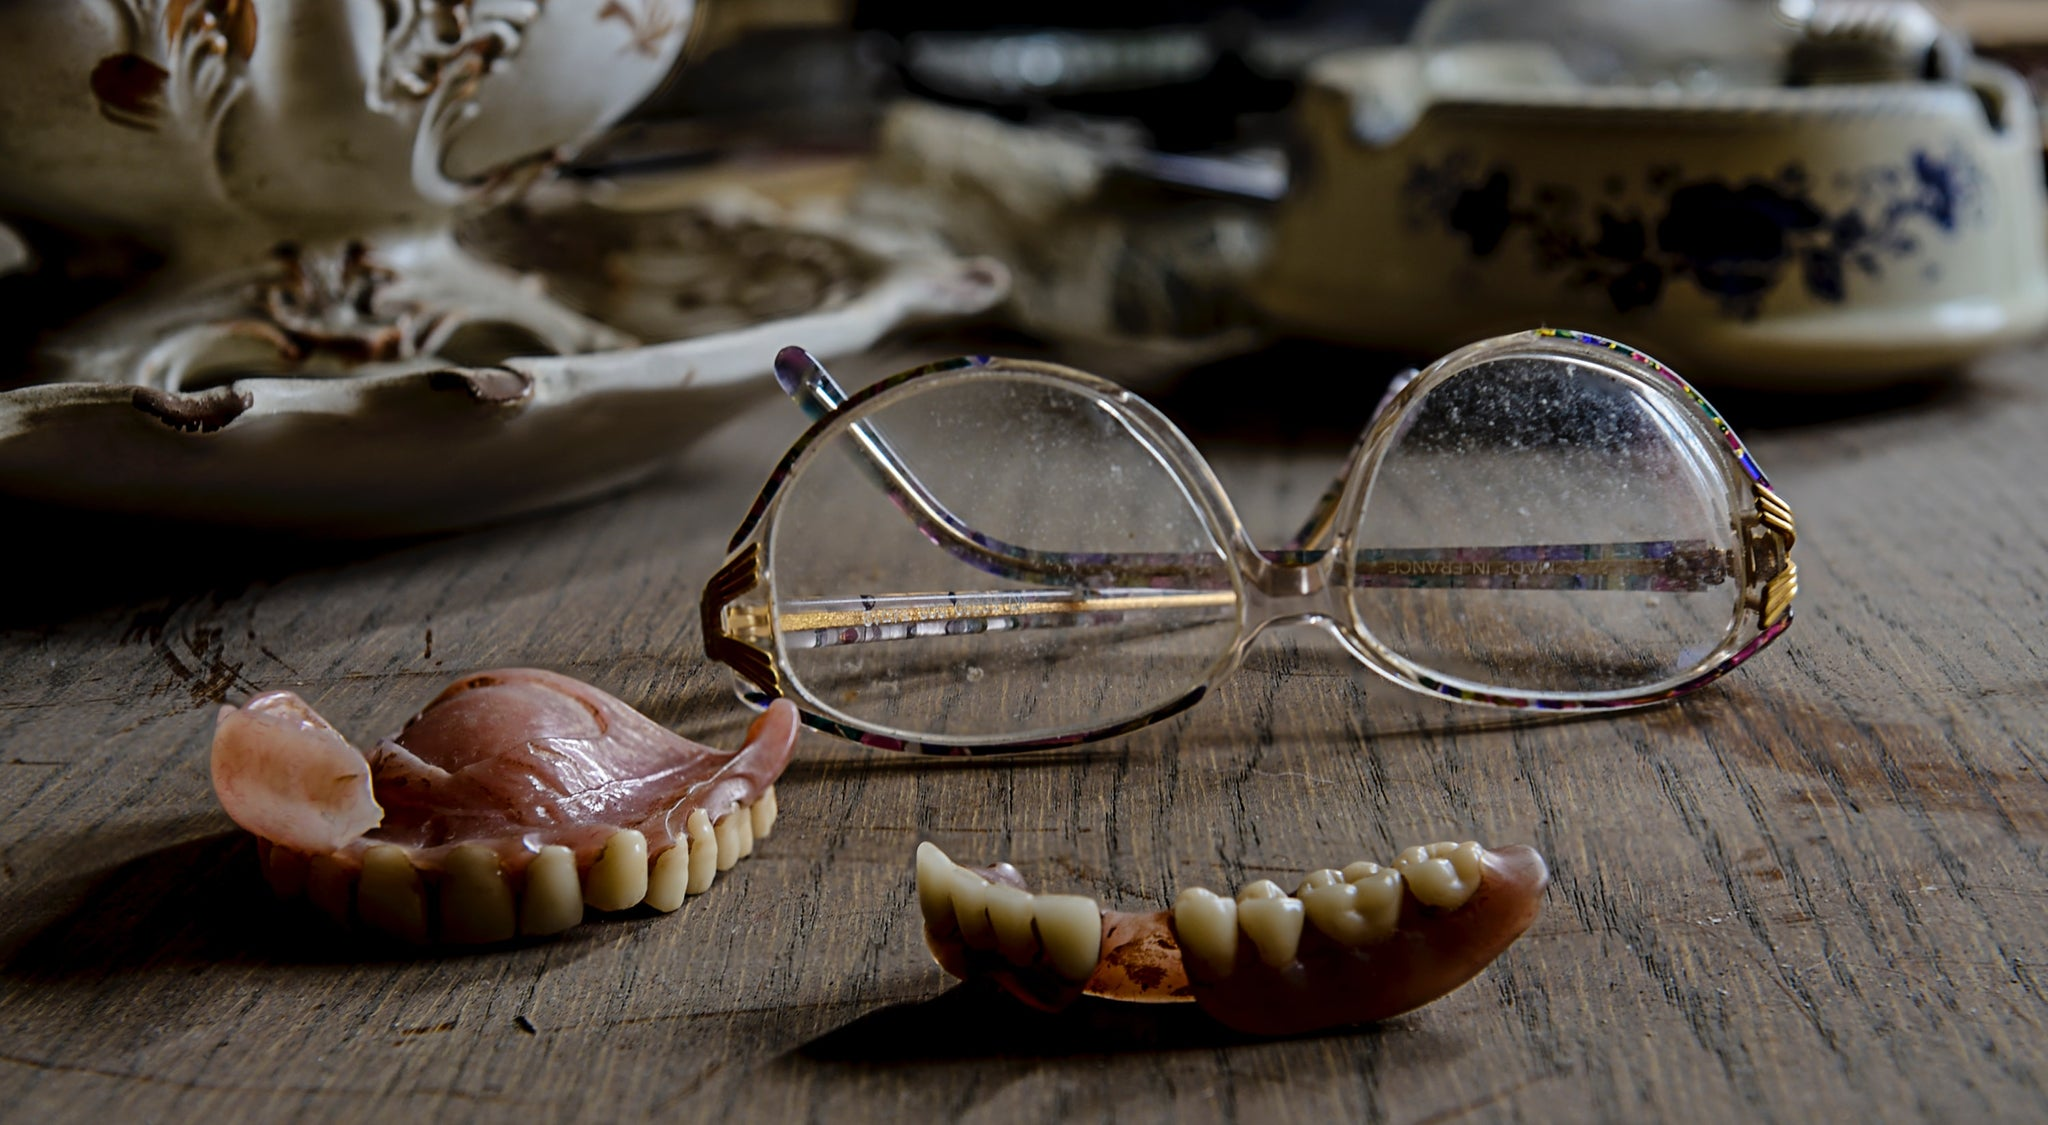 Reading glasses and a pair of dentures on top of a wooden table, for AutoBrush